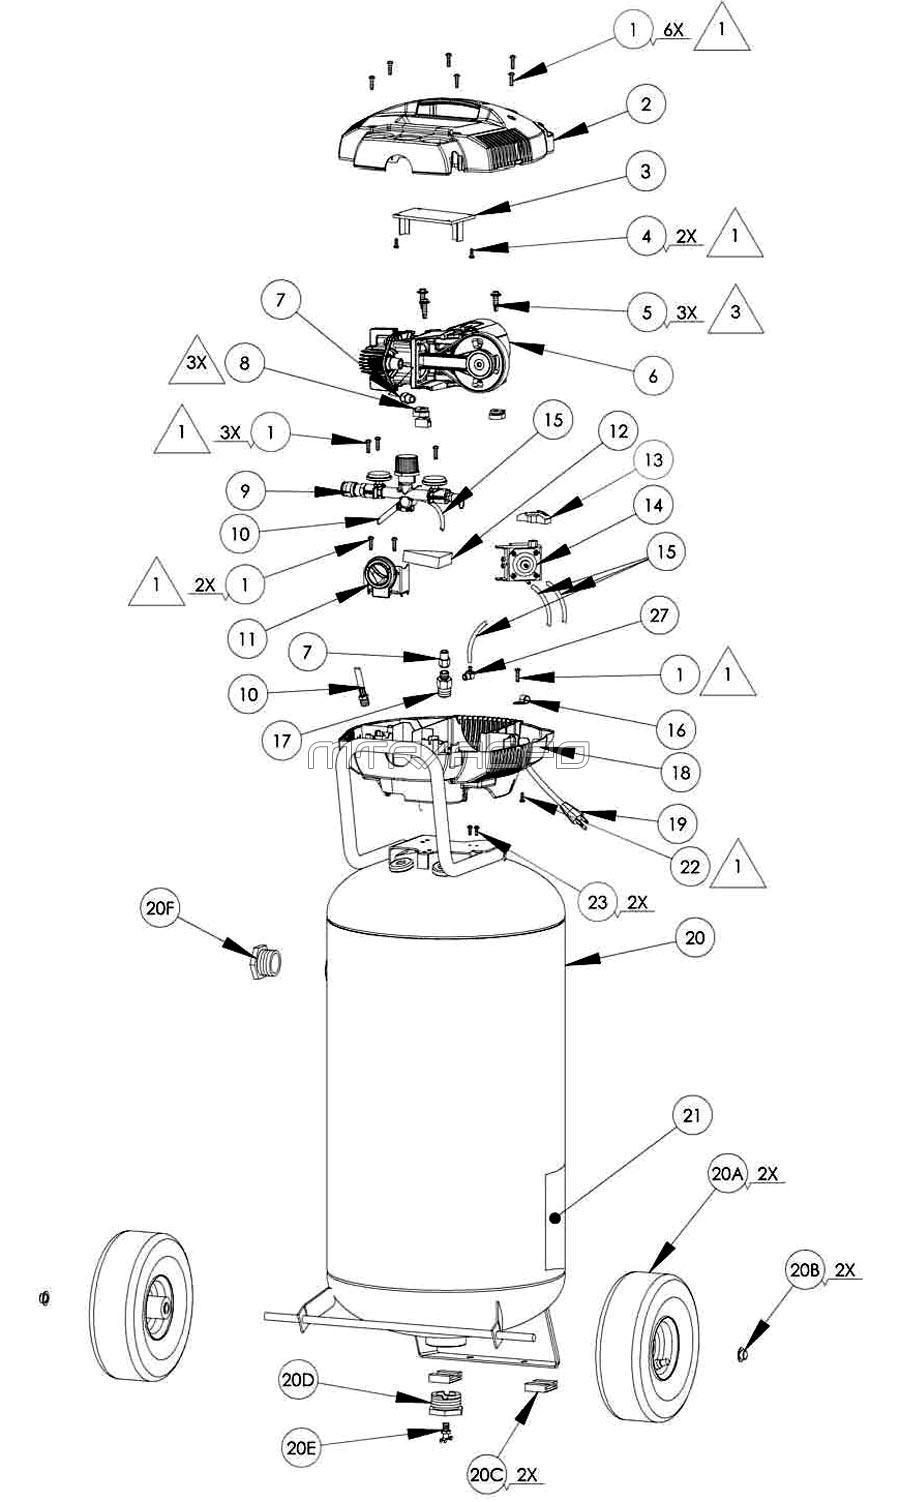 VLH-1582609, 417270 - Air Compressor Parts schematic